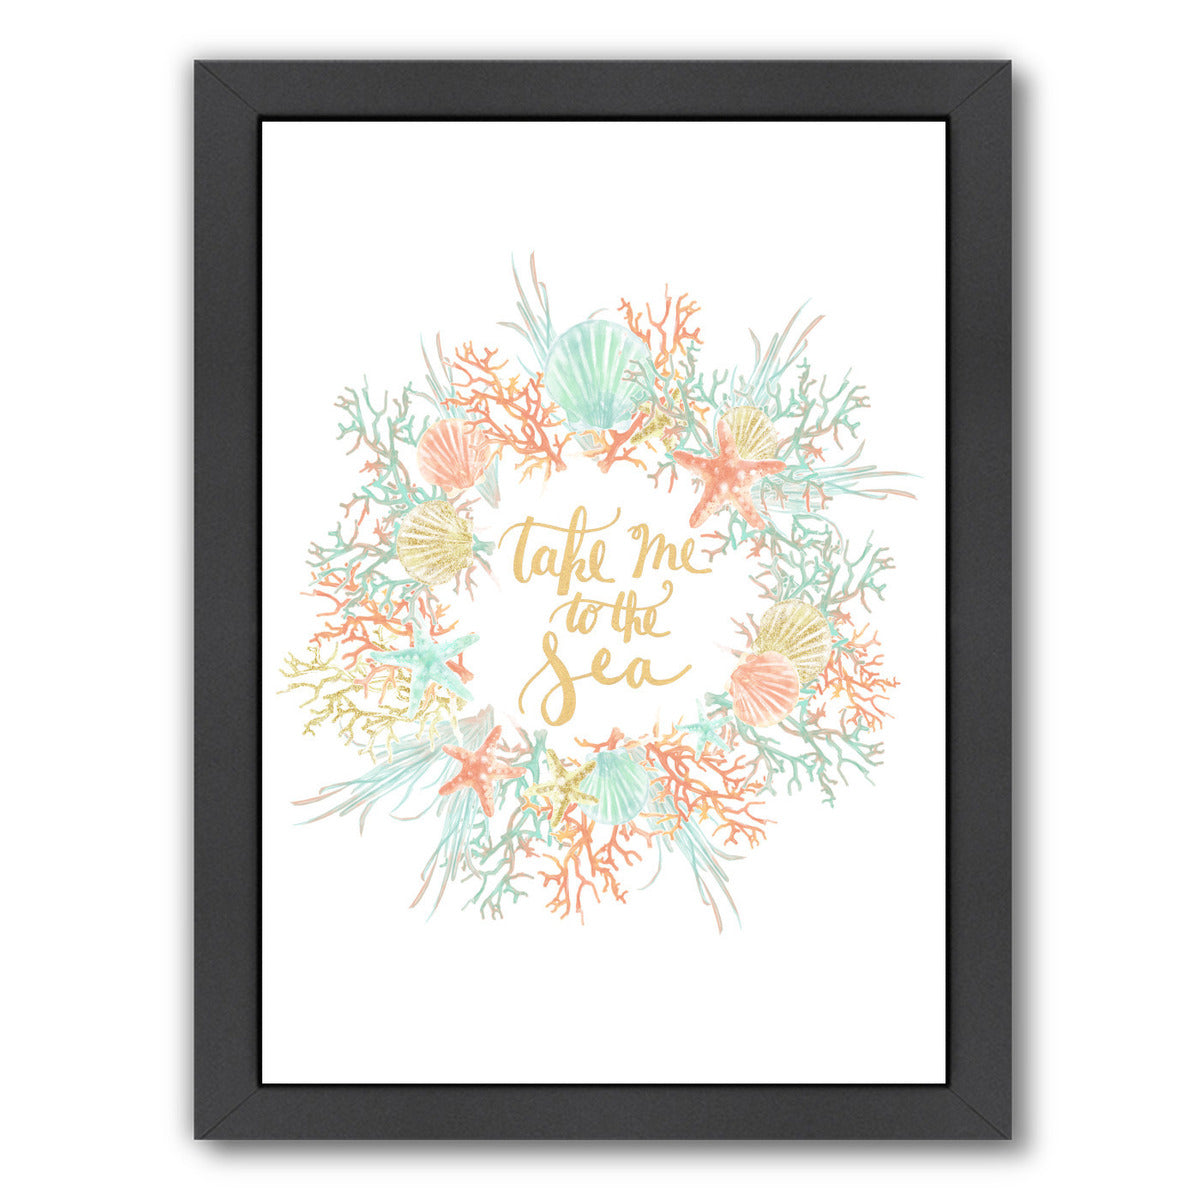 Take Me To The Sea Coastal Print by Jetty Printables Framed Print - Americanflat